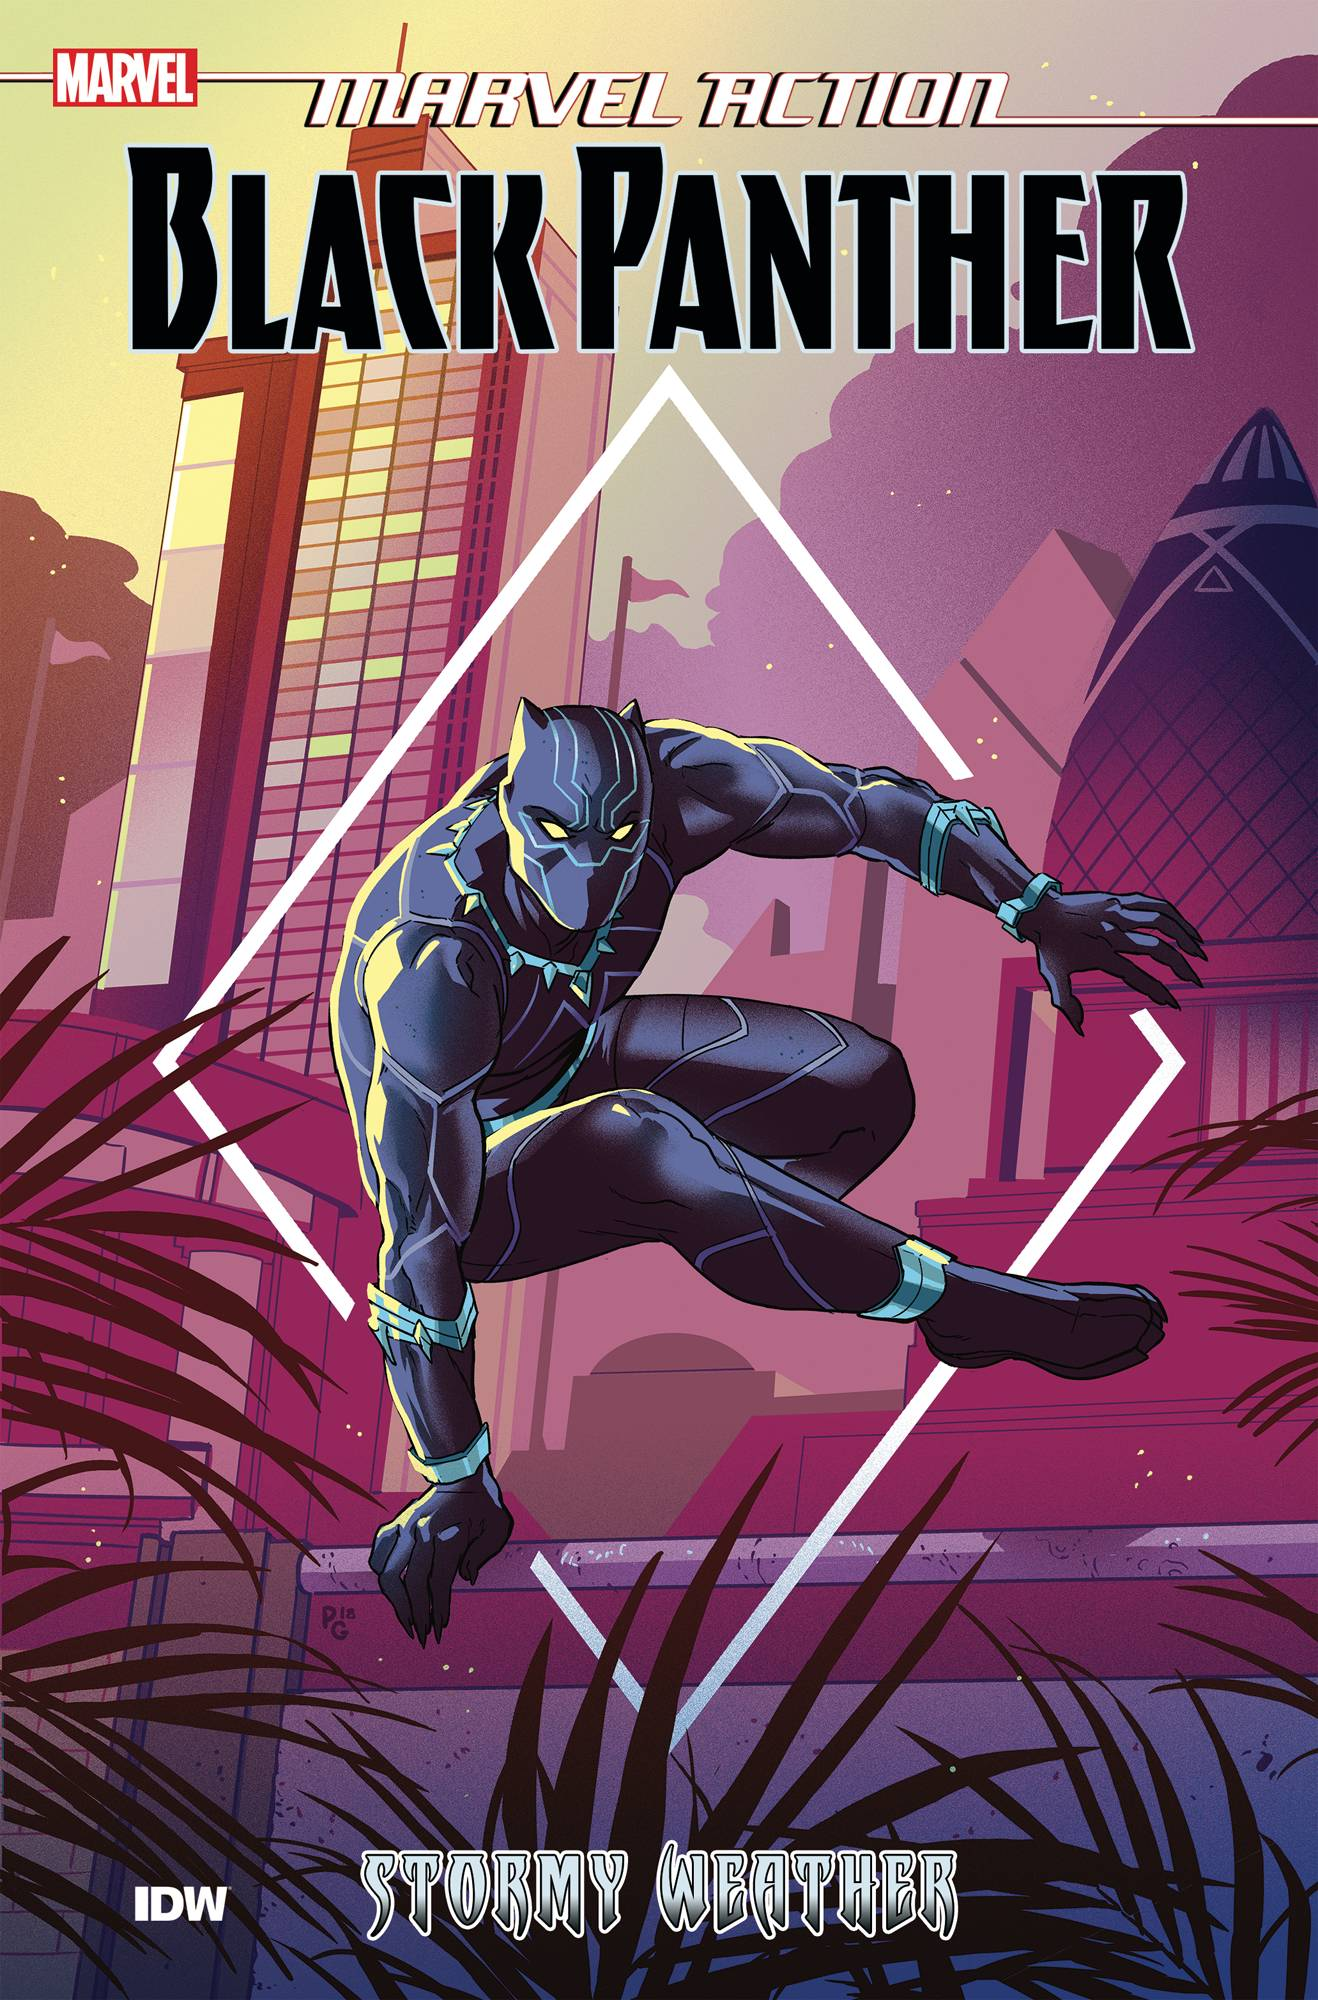 MARVEL ACTION BLACK PANTHER TP BOOK 01 STORMY WEATHER (MAR19